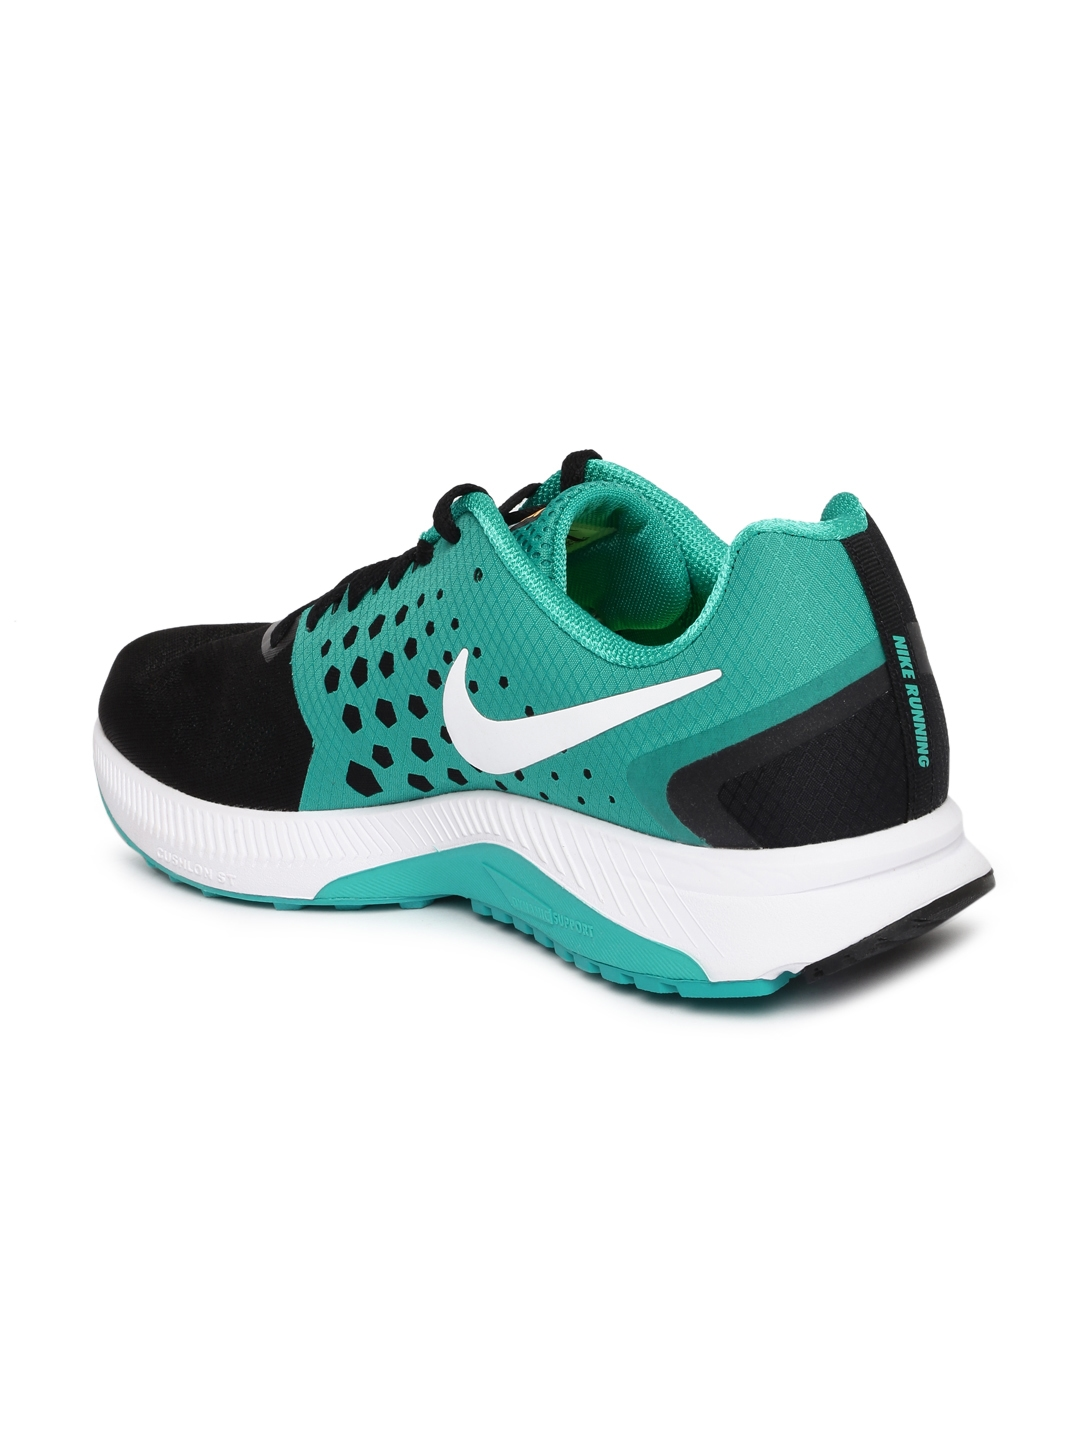 7dcefbbeafc1 Buy Nike Men Black ZOOM SPAN Running Shoes - Sports Shoes for Men ...